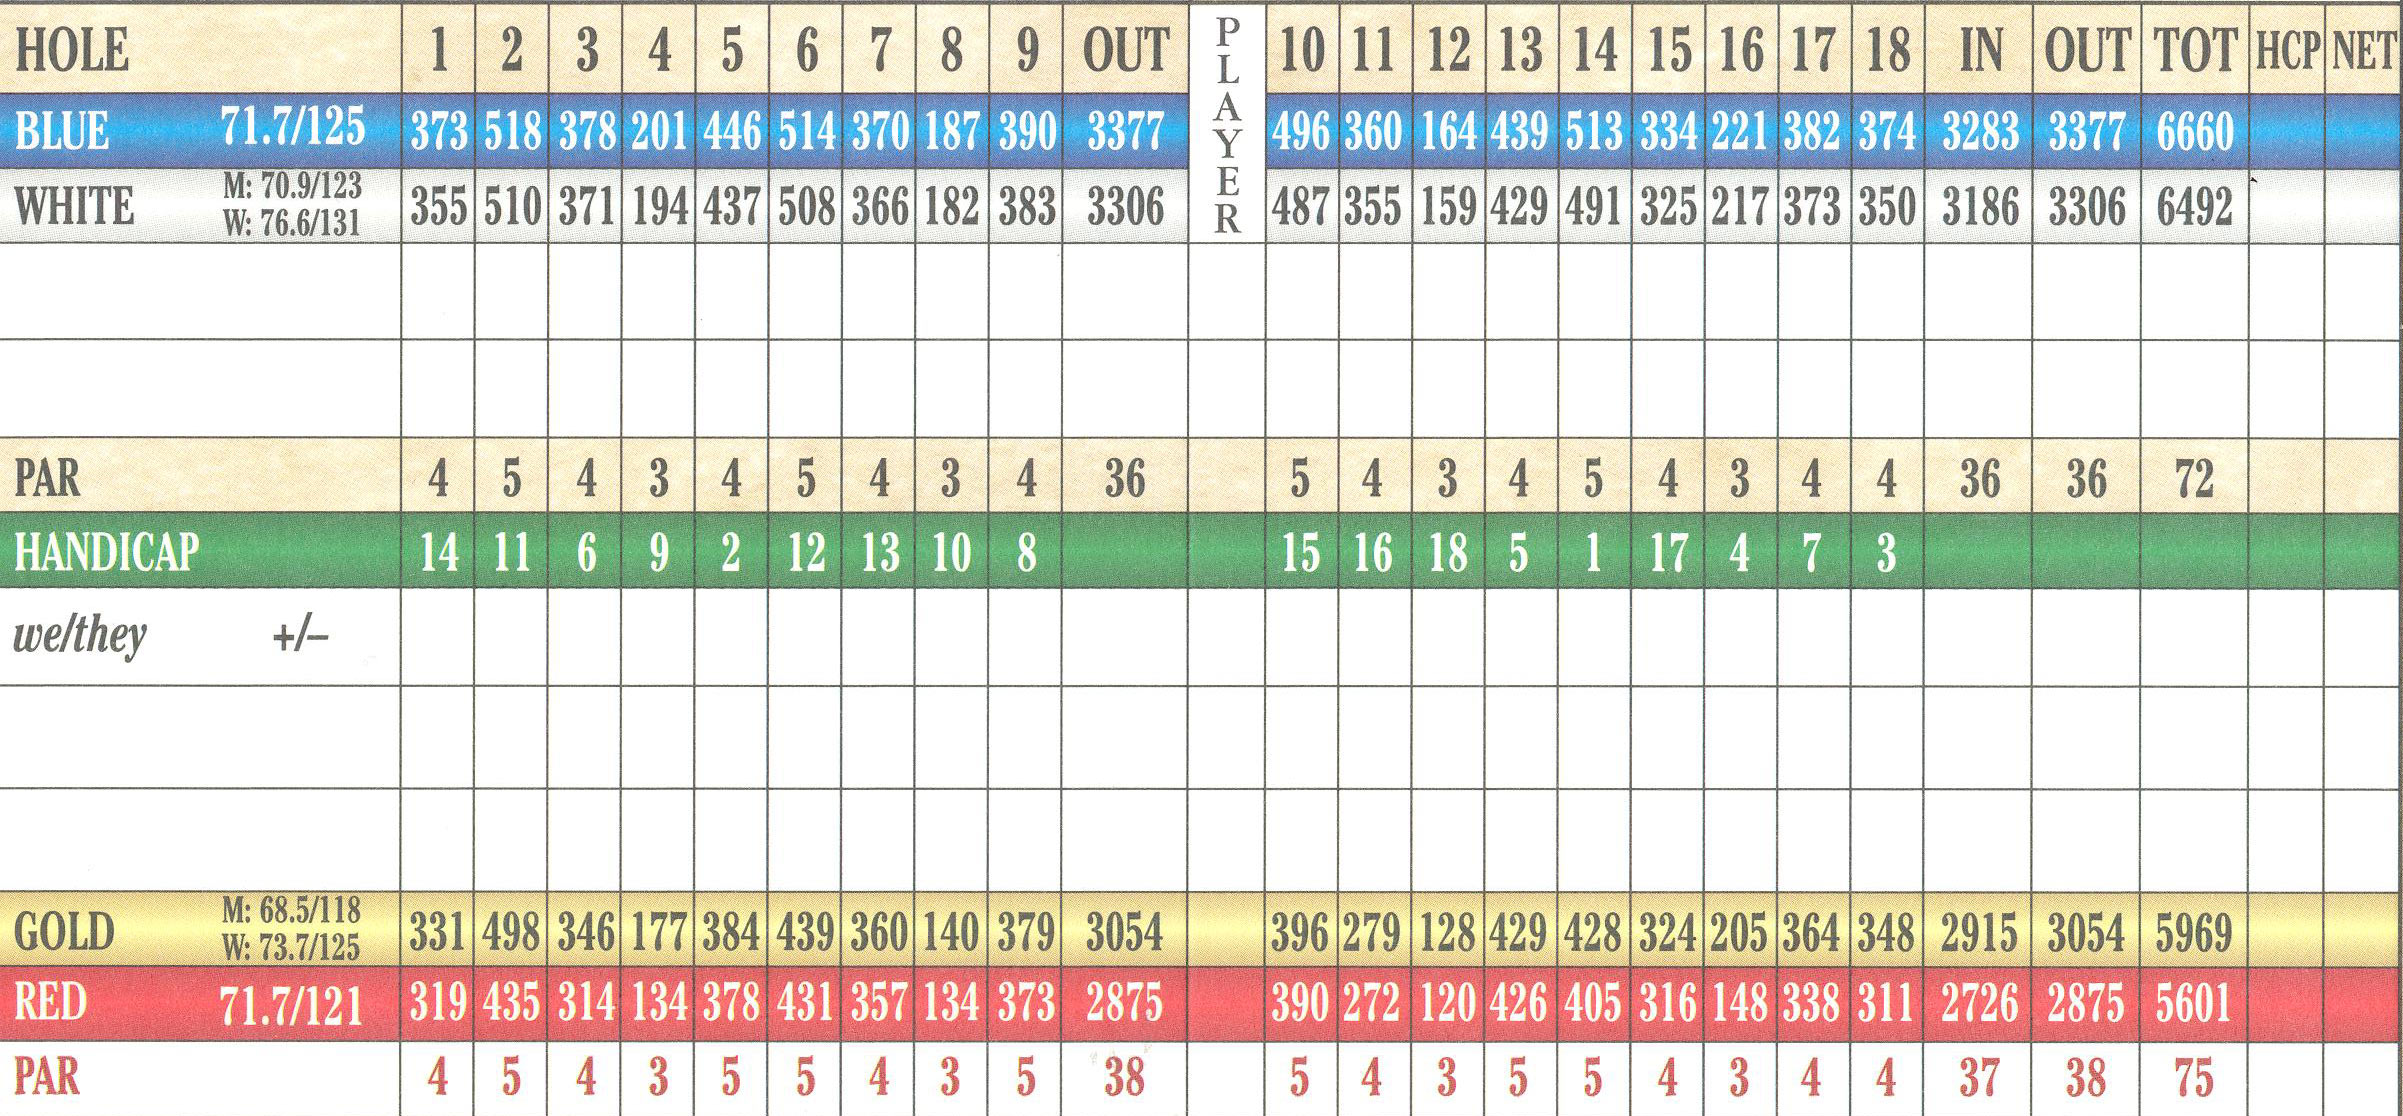 EPGC-SCORECARD-FULL-SIZE